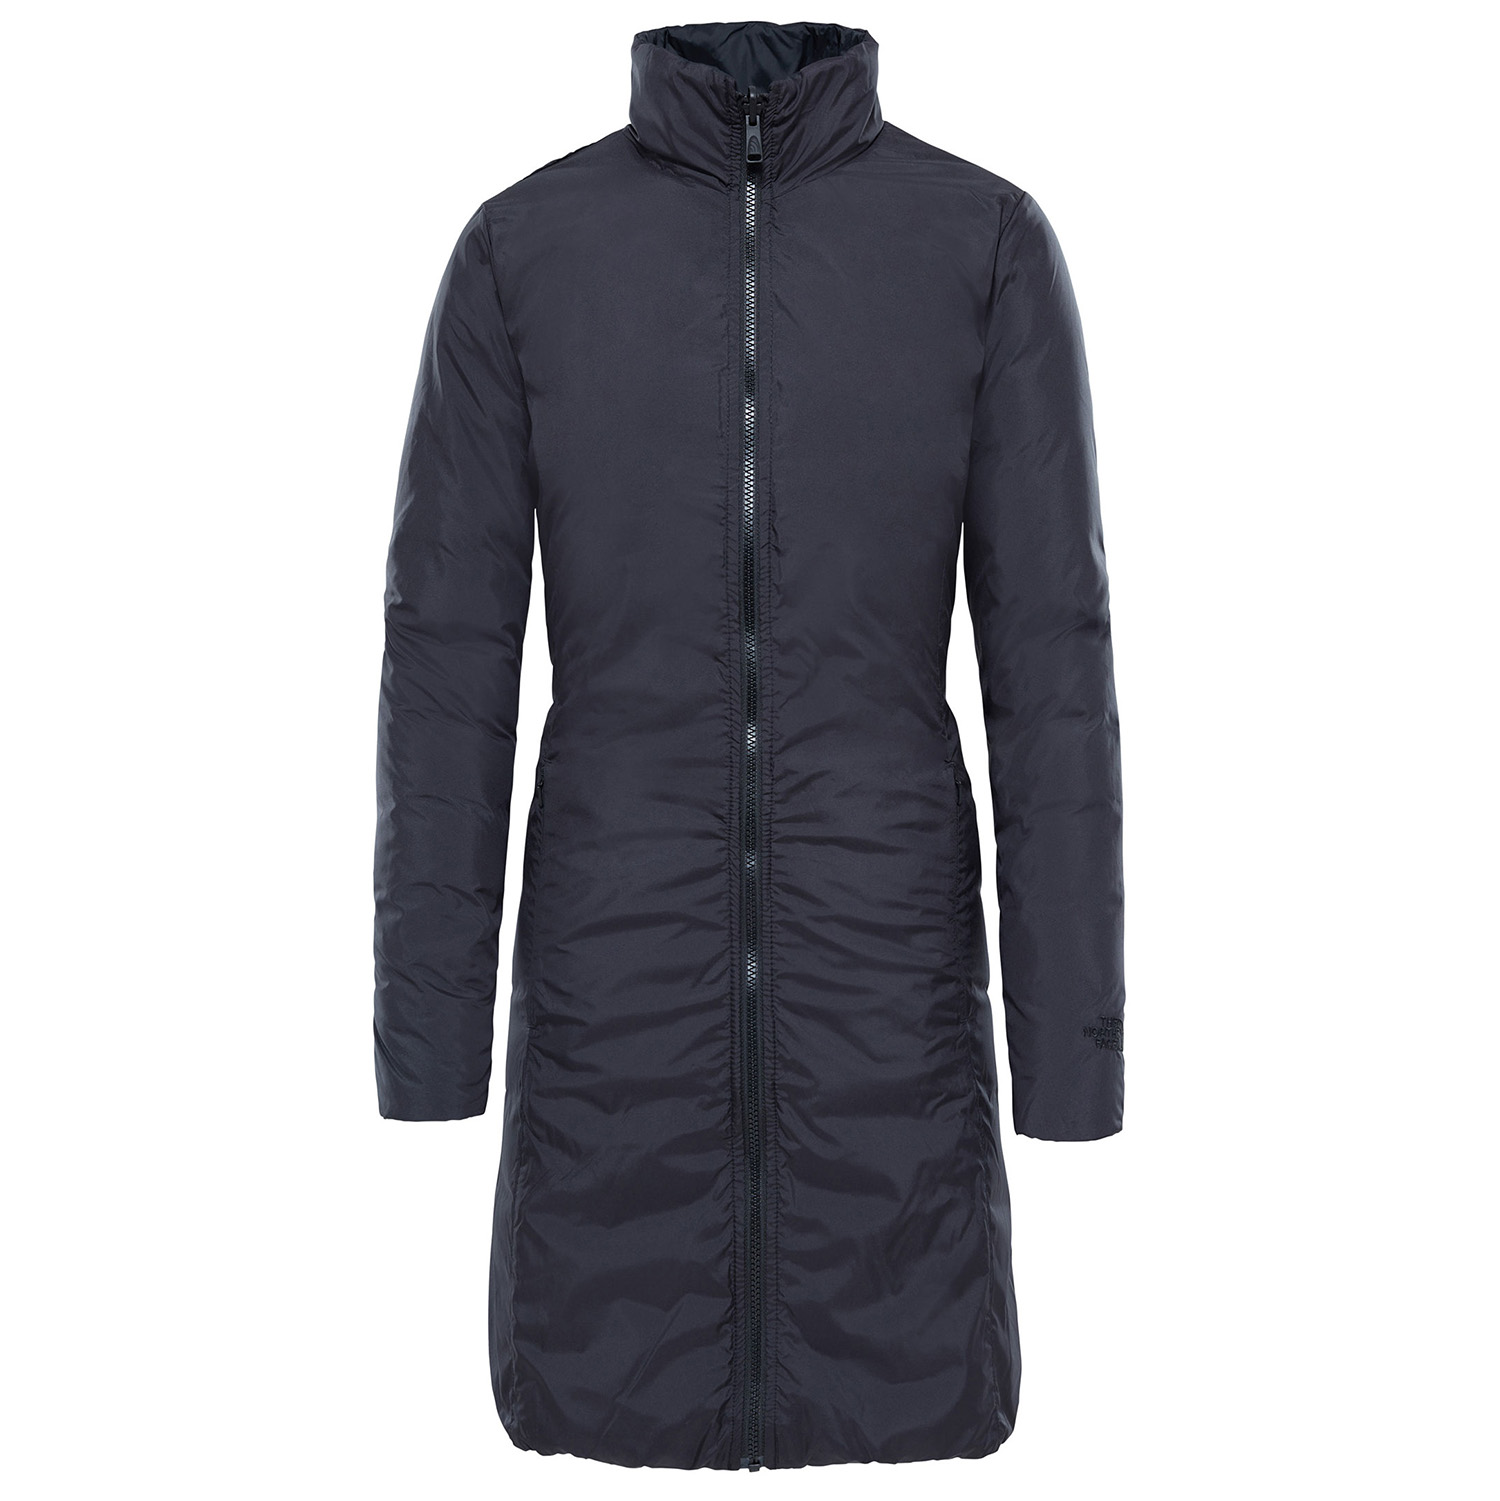 North Face Suzanne Triclimate Vandtætte Jakker available